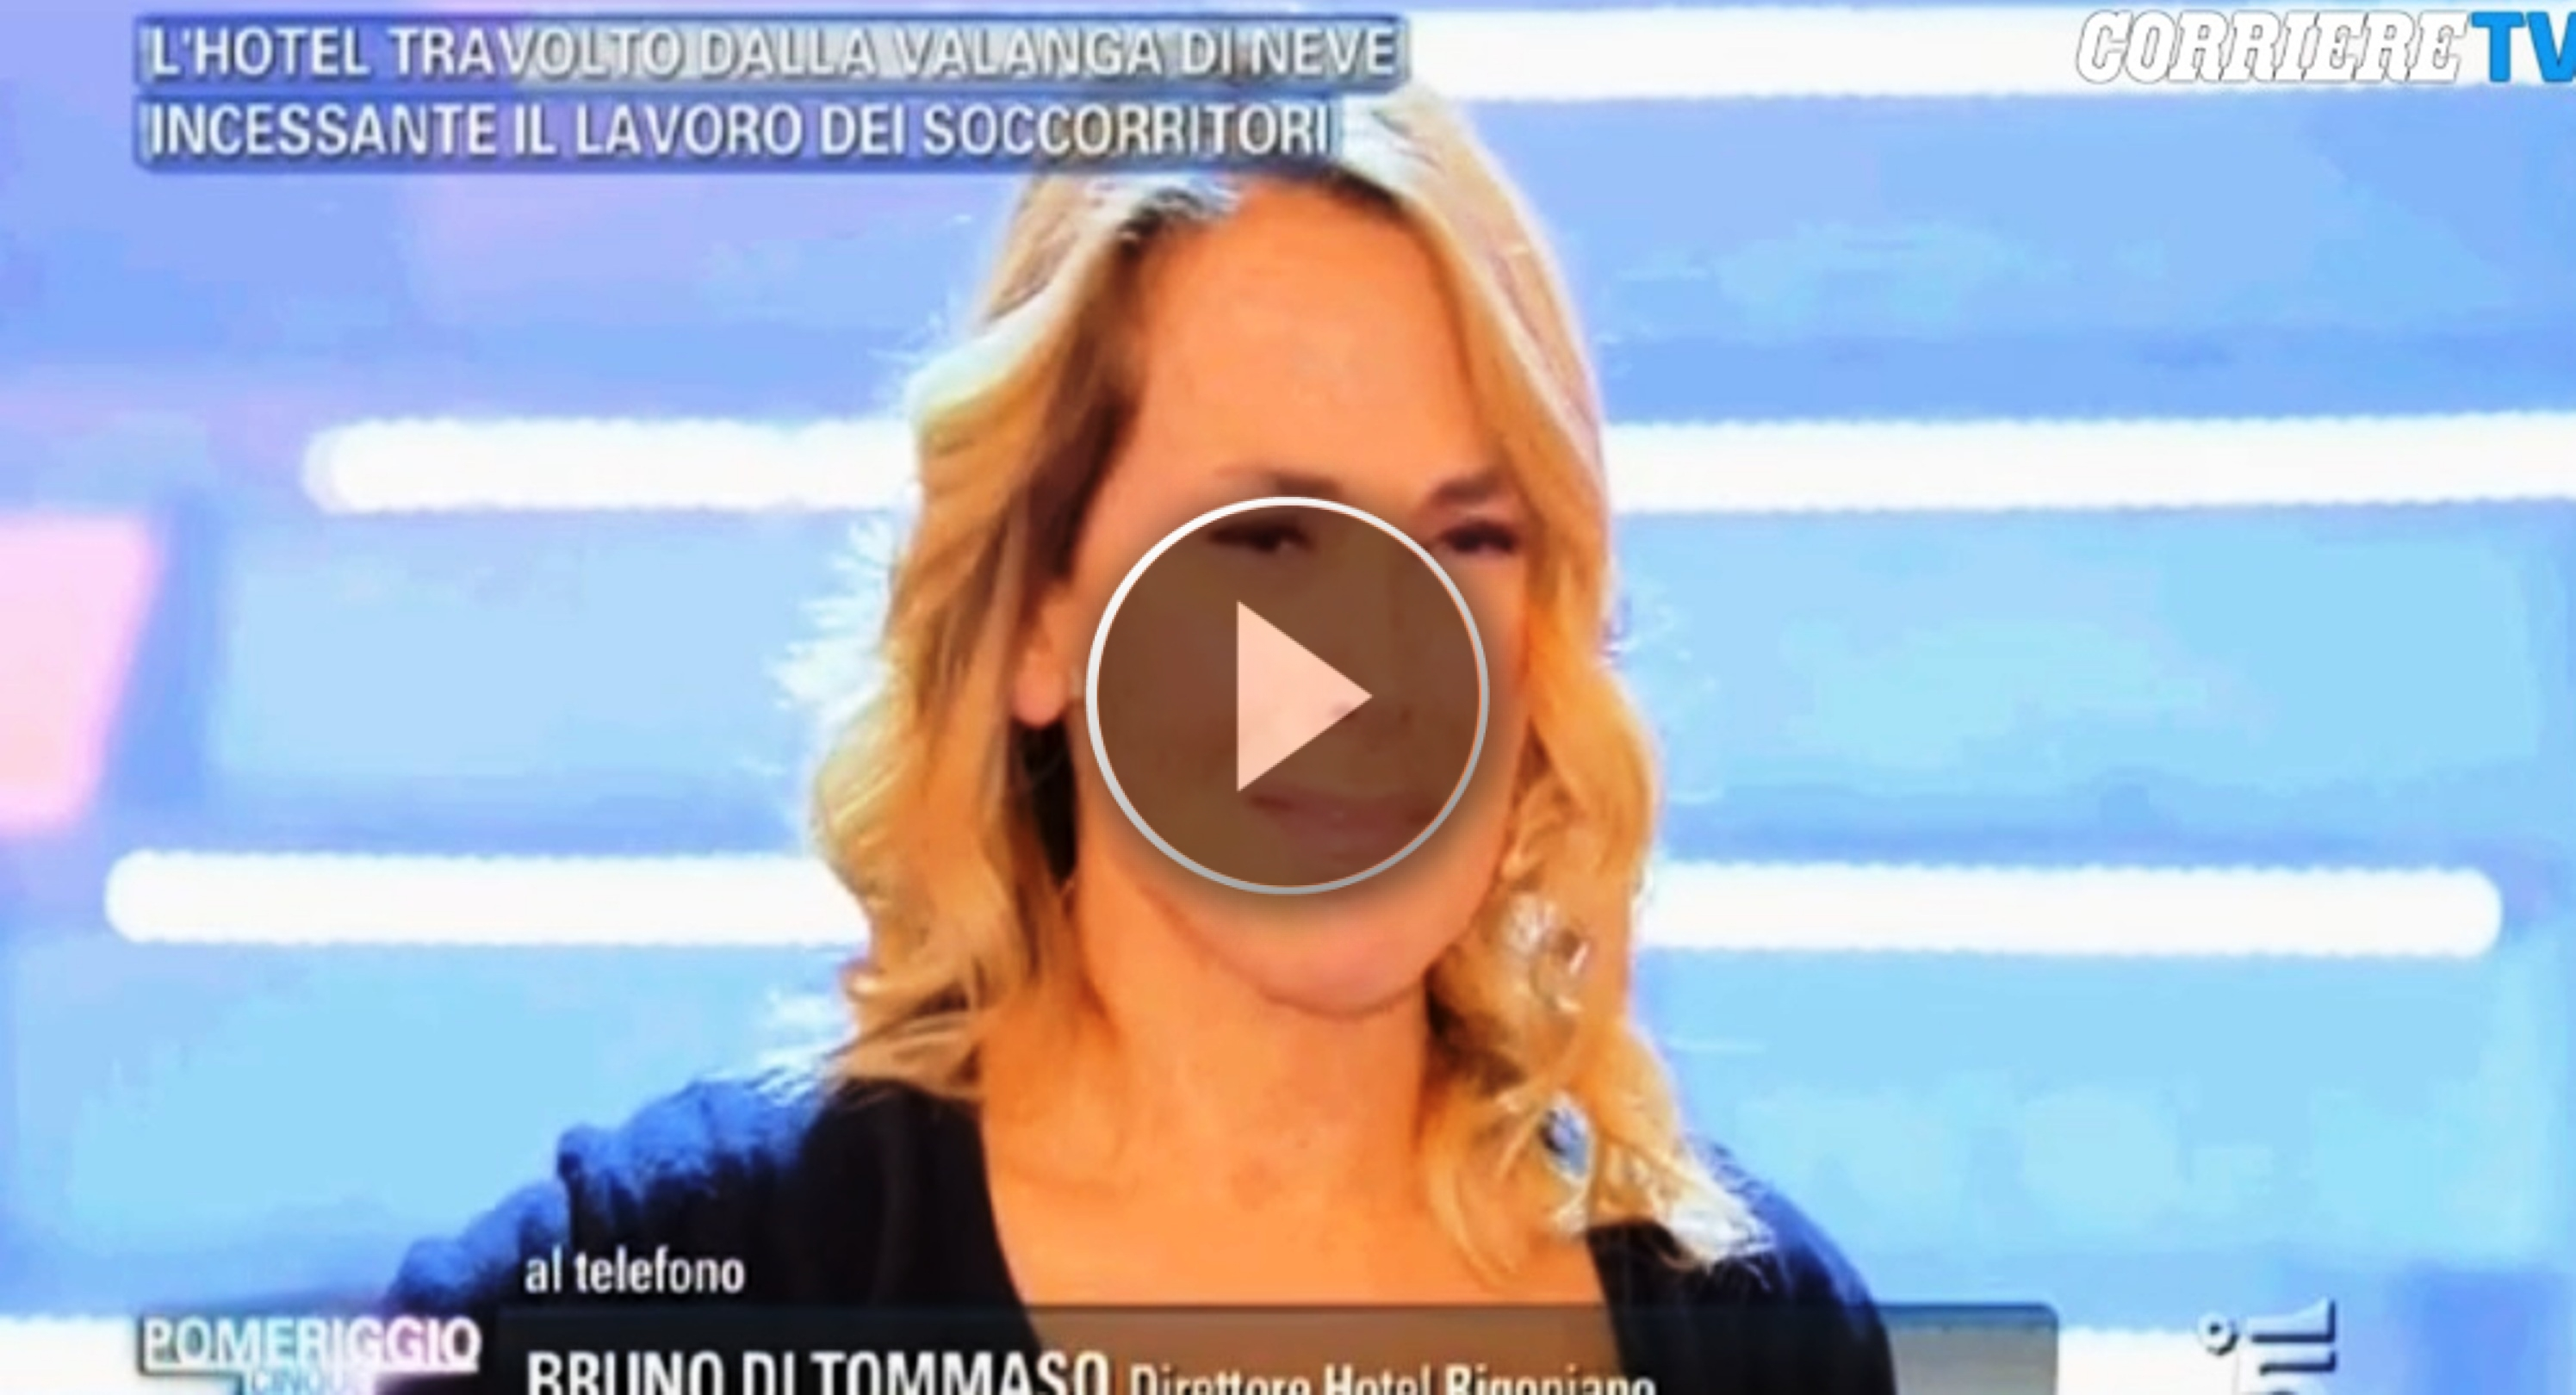 Tragedia di Rigopiano, Barbara D'Urso scoppia a piangere in tv - VIDEO